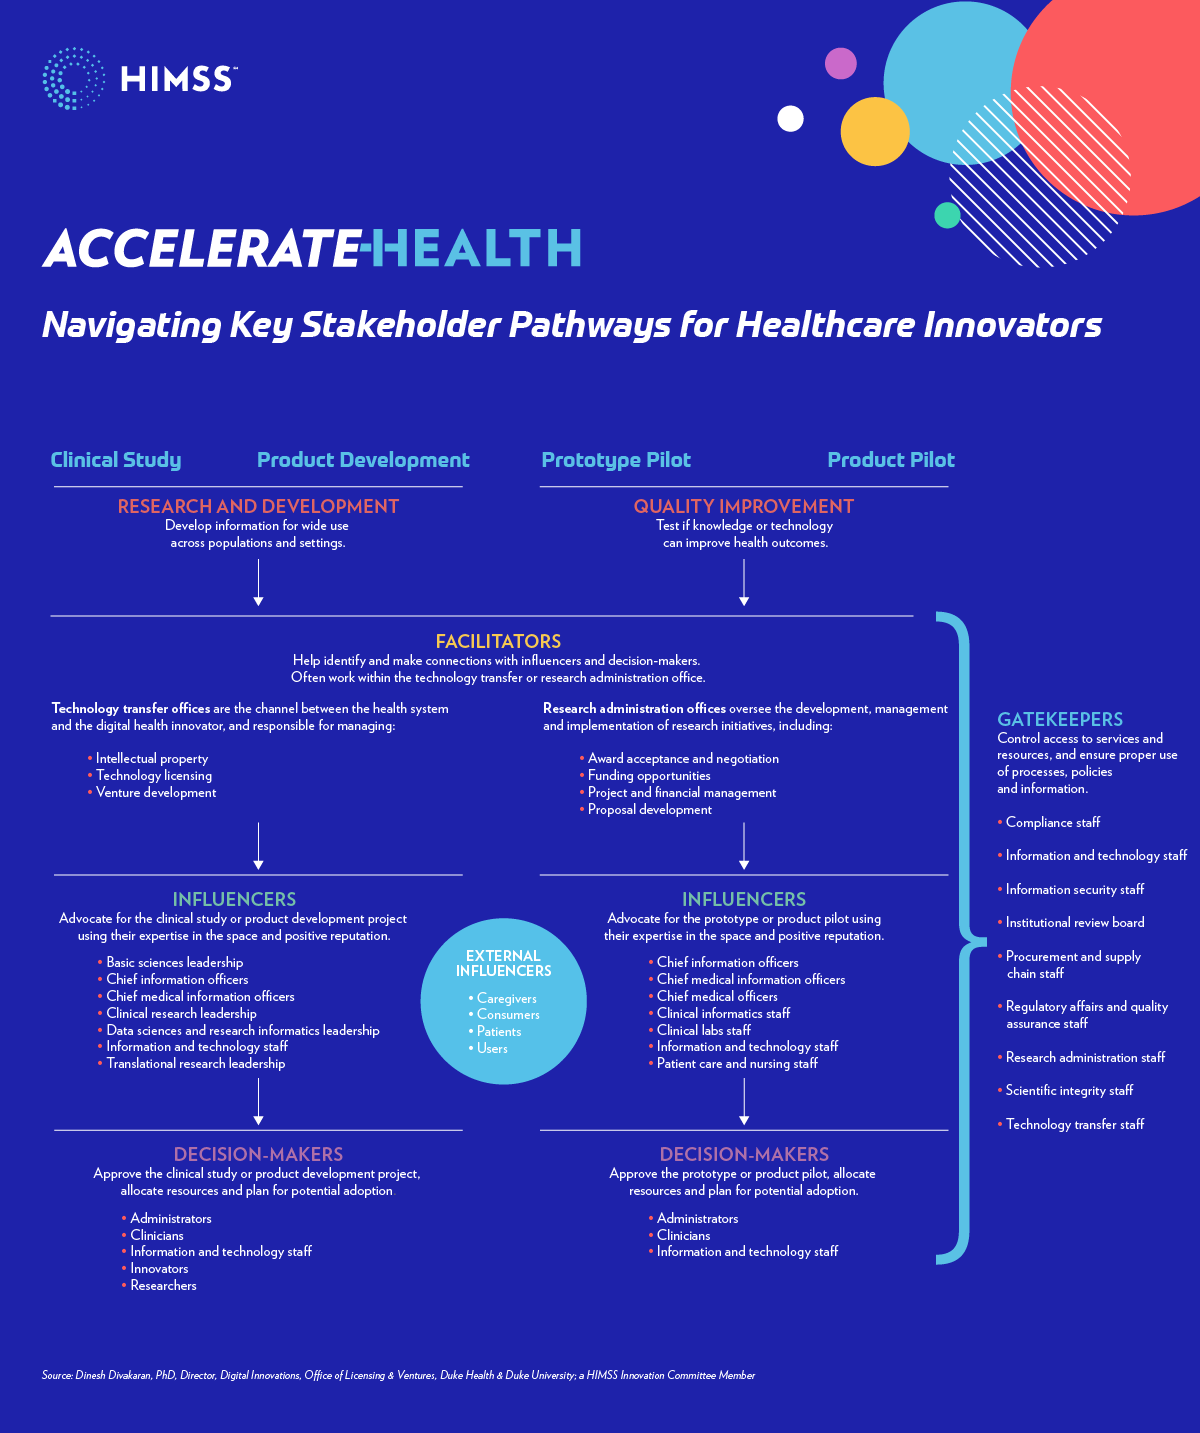 Infographic explaining how to navigate key stakeholder pathways for healthcare innovators